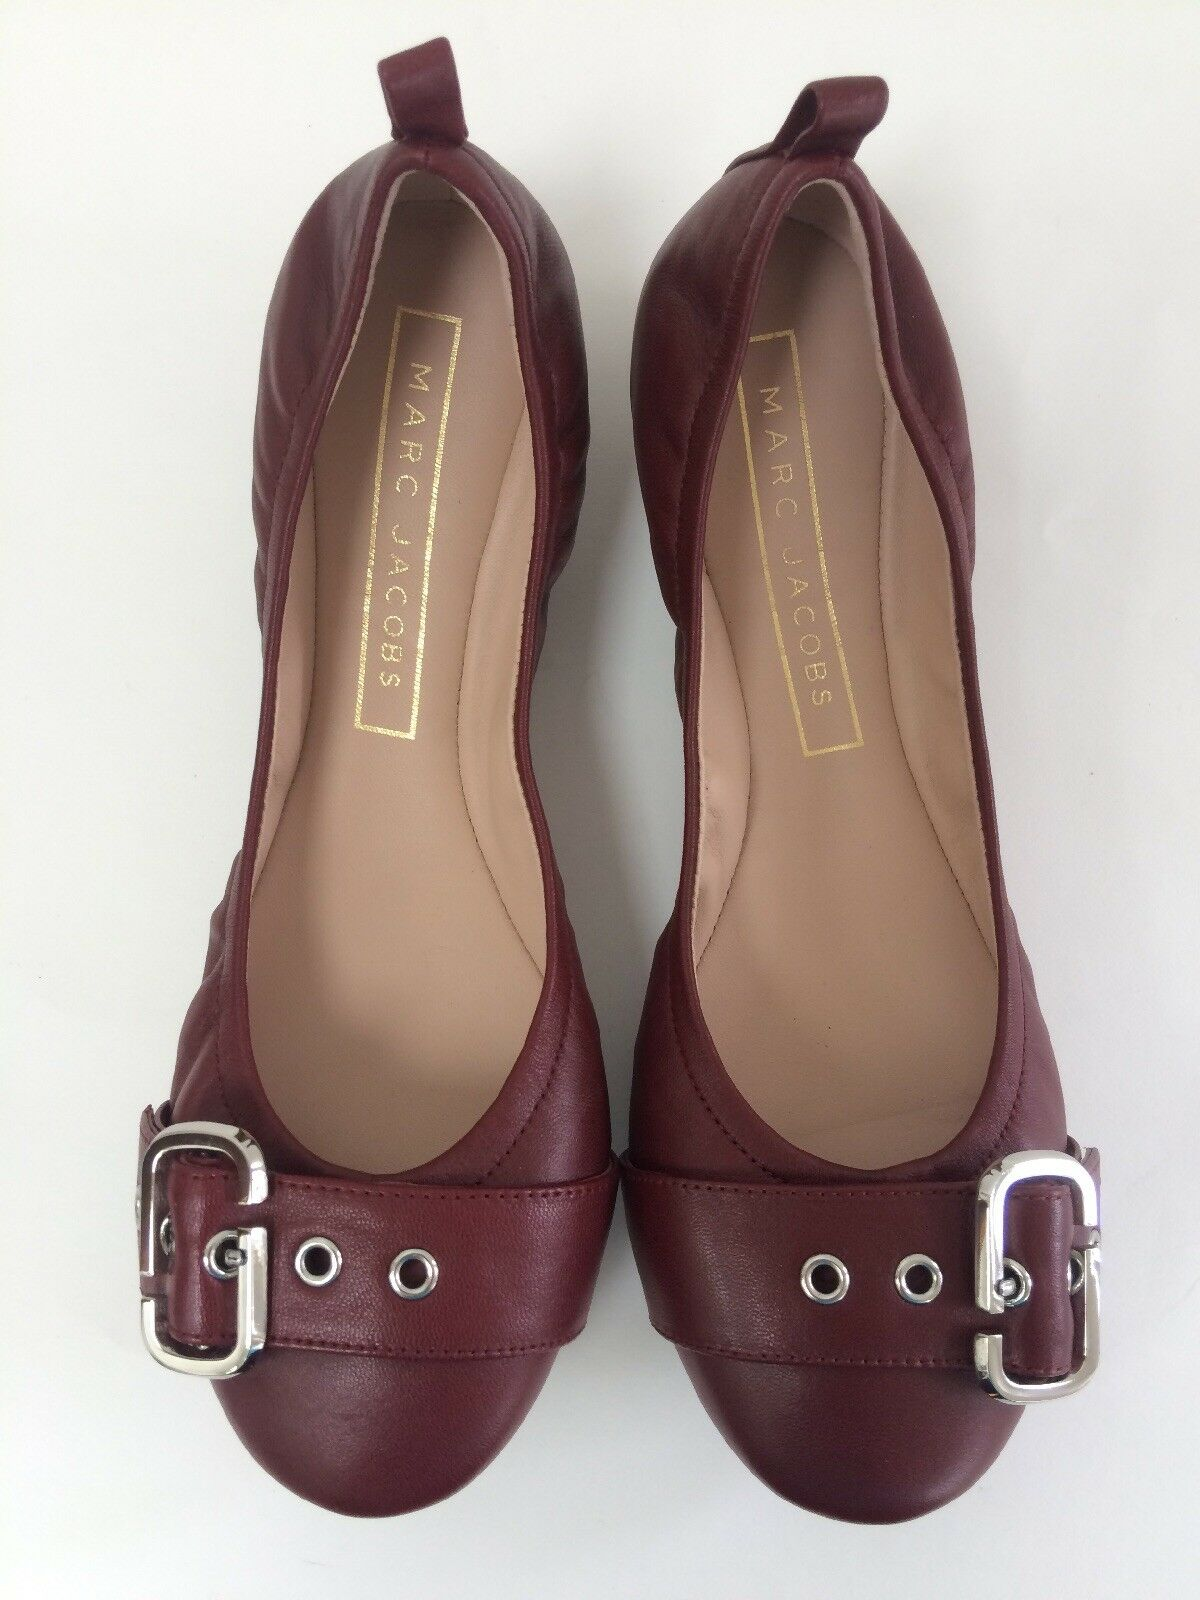 Marc Jacobs Dolly Leather Buckled Ballerina Flat 36.5 US 6.5 Bordeaux